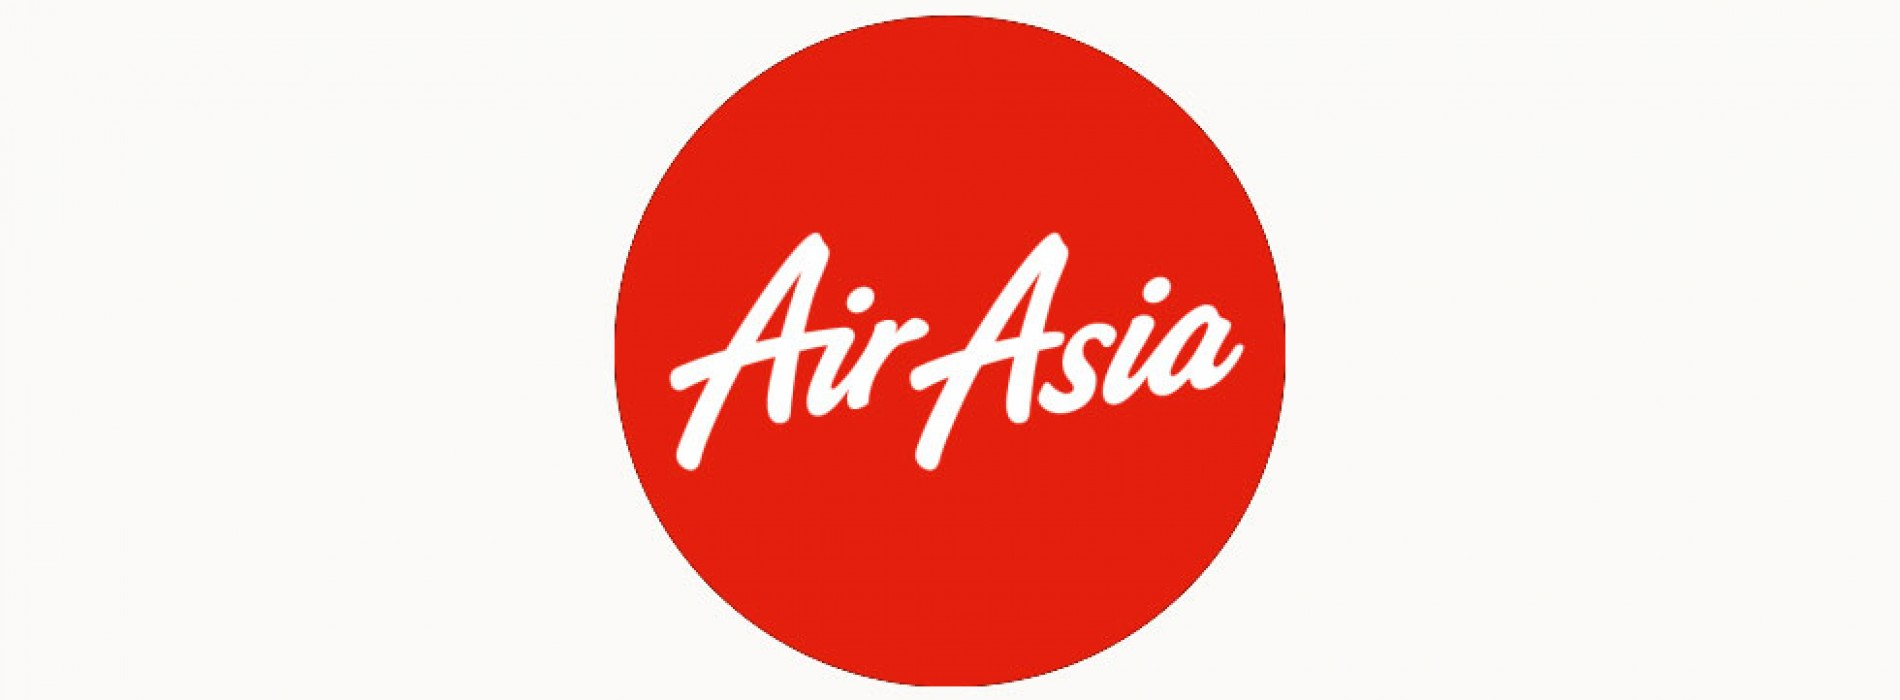 AirAsia & AirAsia X offer the best travel plans for everyone!